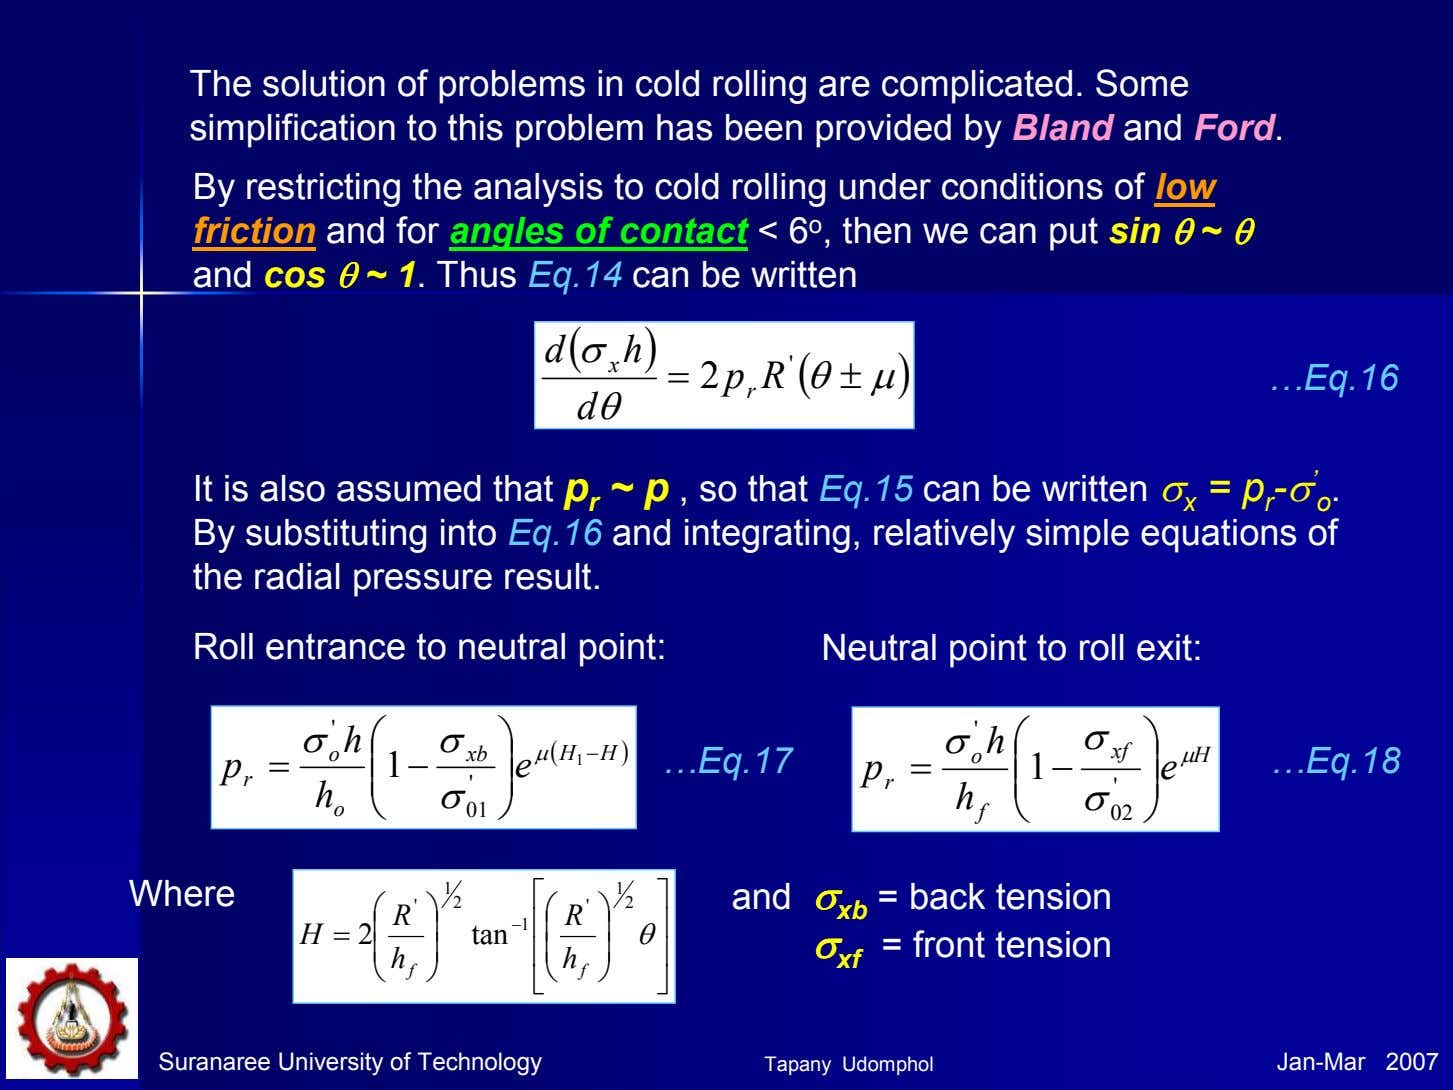 The solution of problems in cold rolling are complicated. Some simplification to this problem has